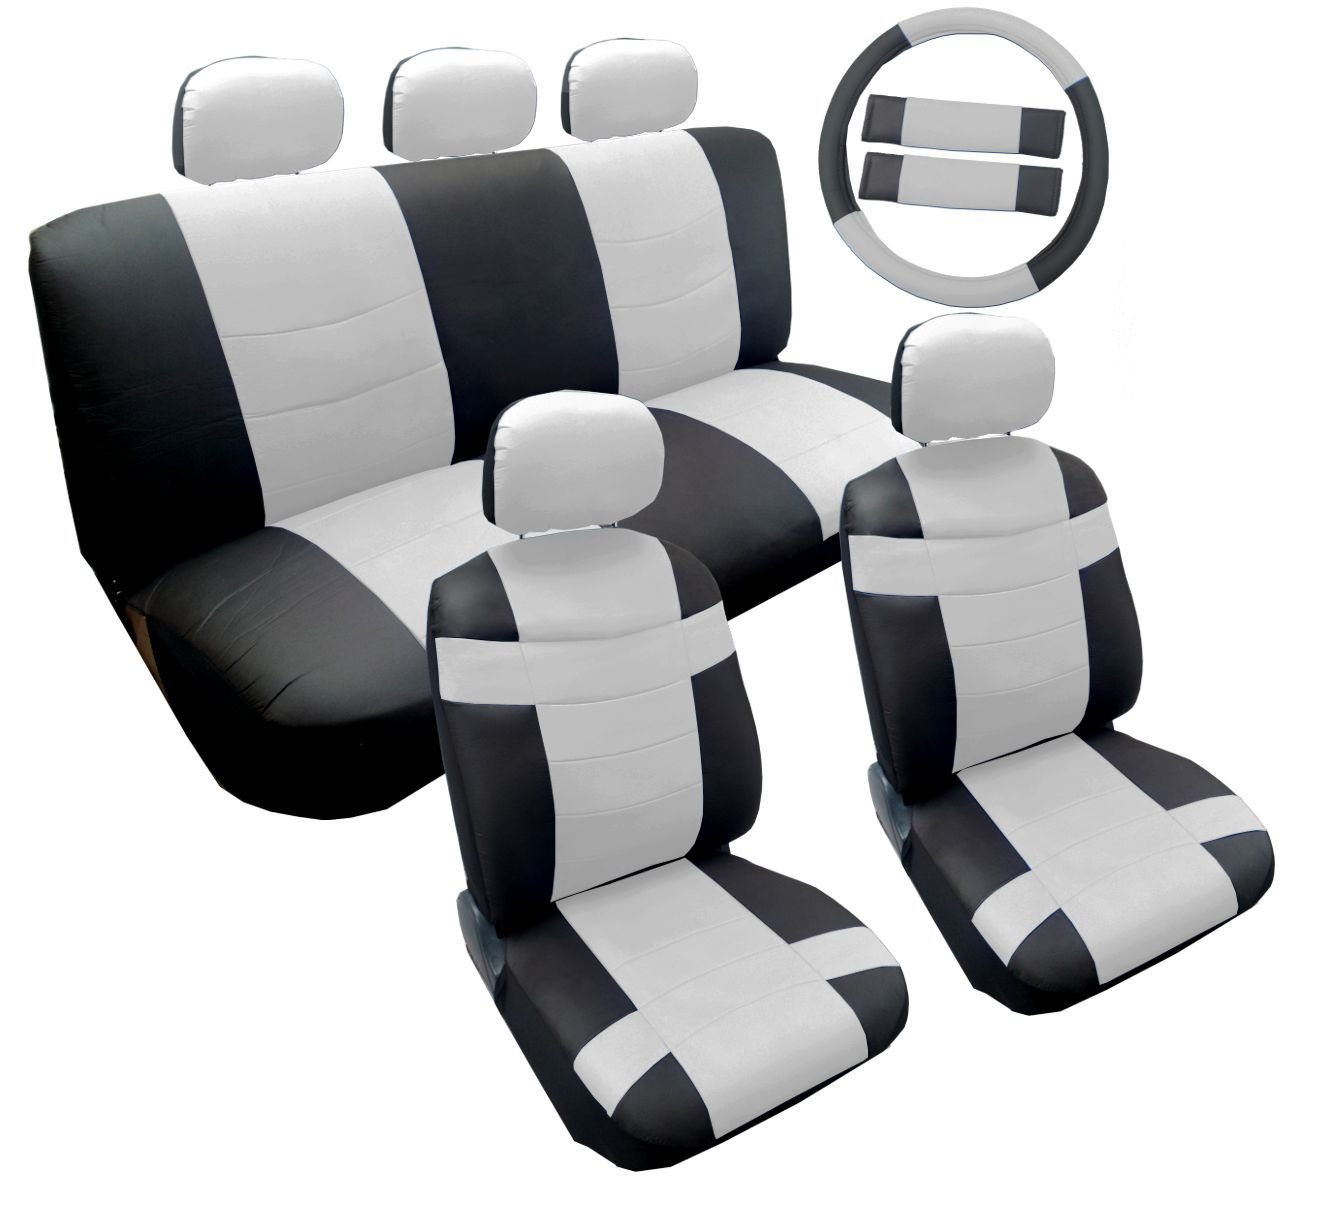 Two Tone Premium Classic White and Black Synthetic PU Faux Leather Seat Cover Set 14pc Toyota Corolla